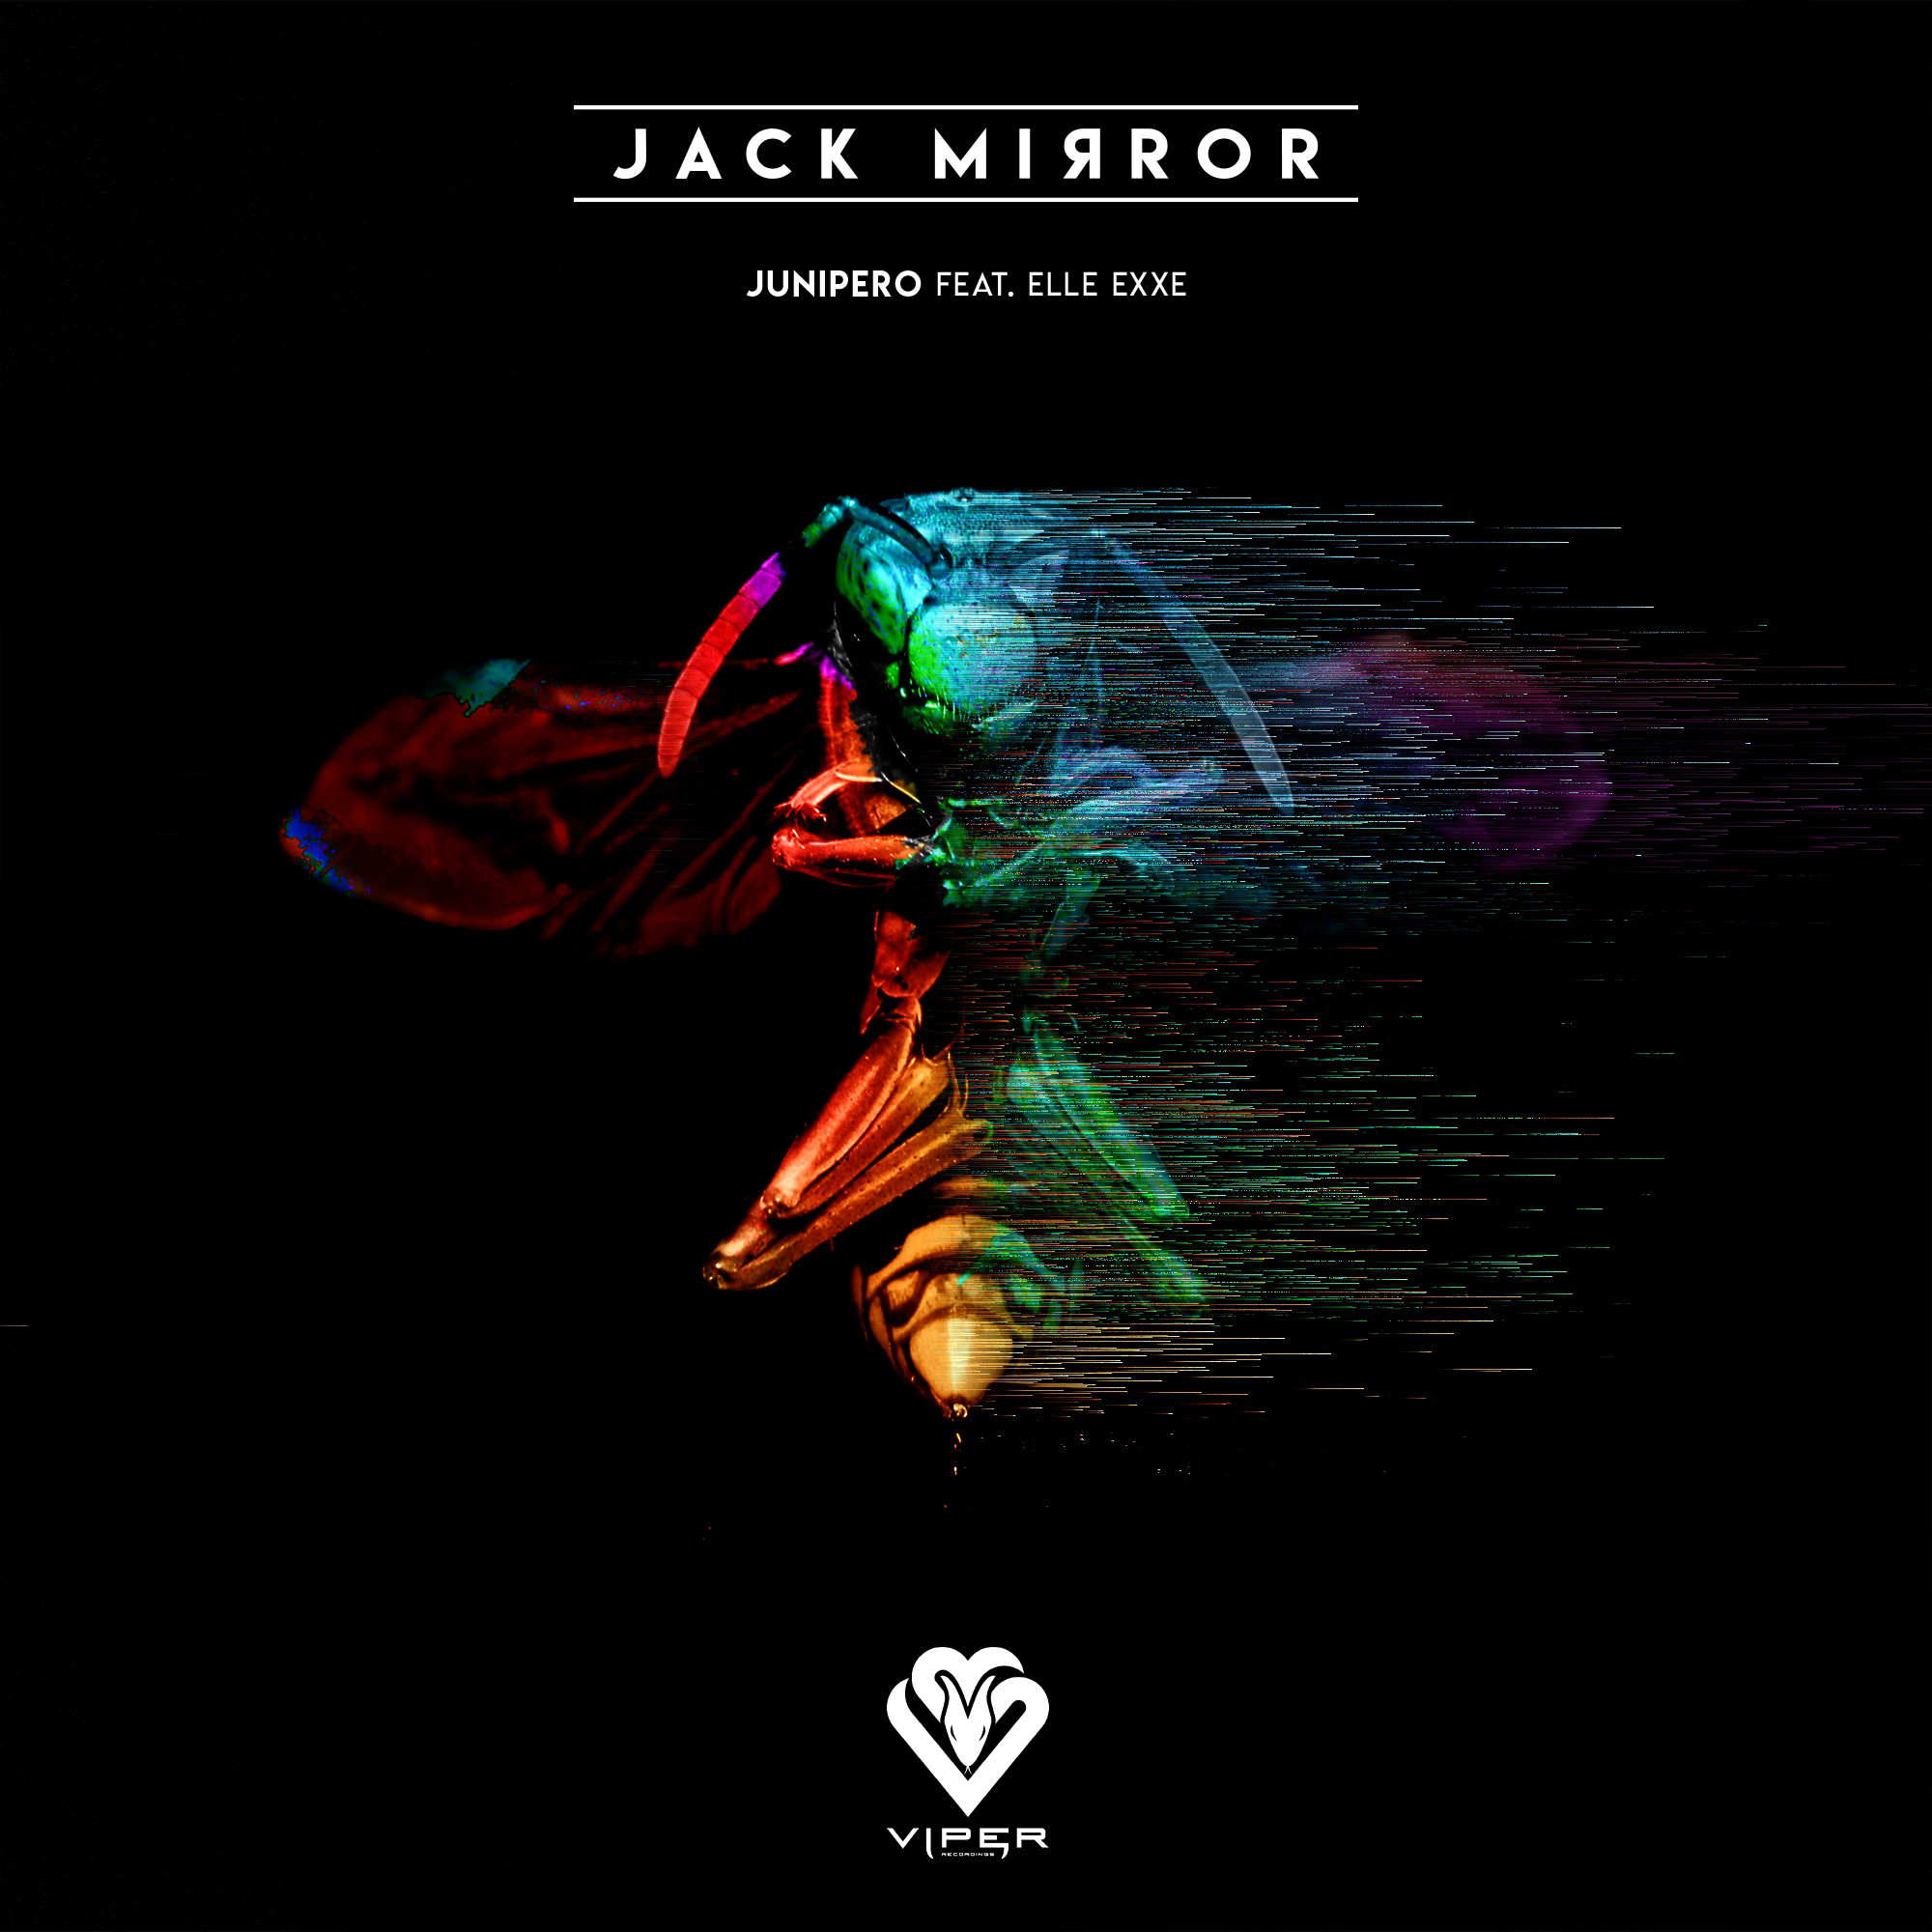 Jack Mirror - Junipero ft. Elle Exxe [VPR224]